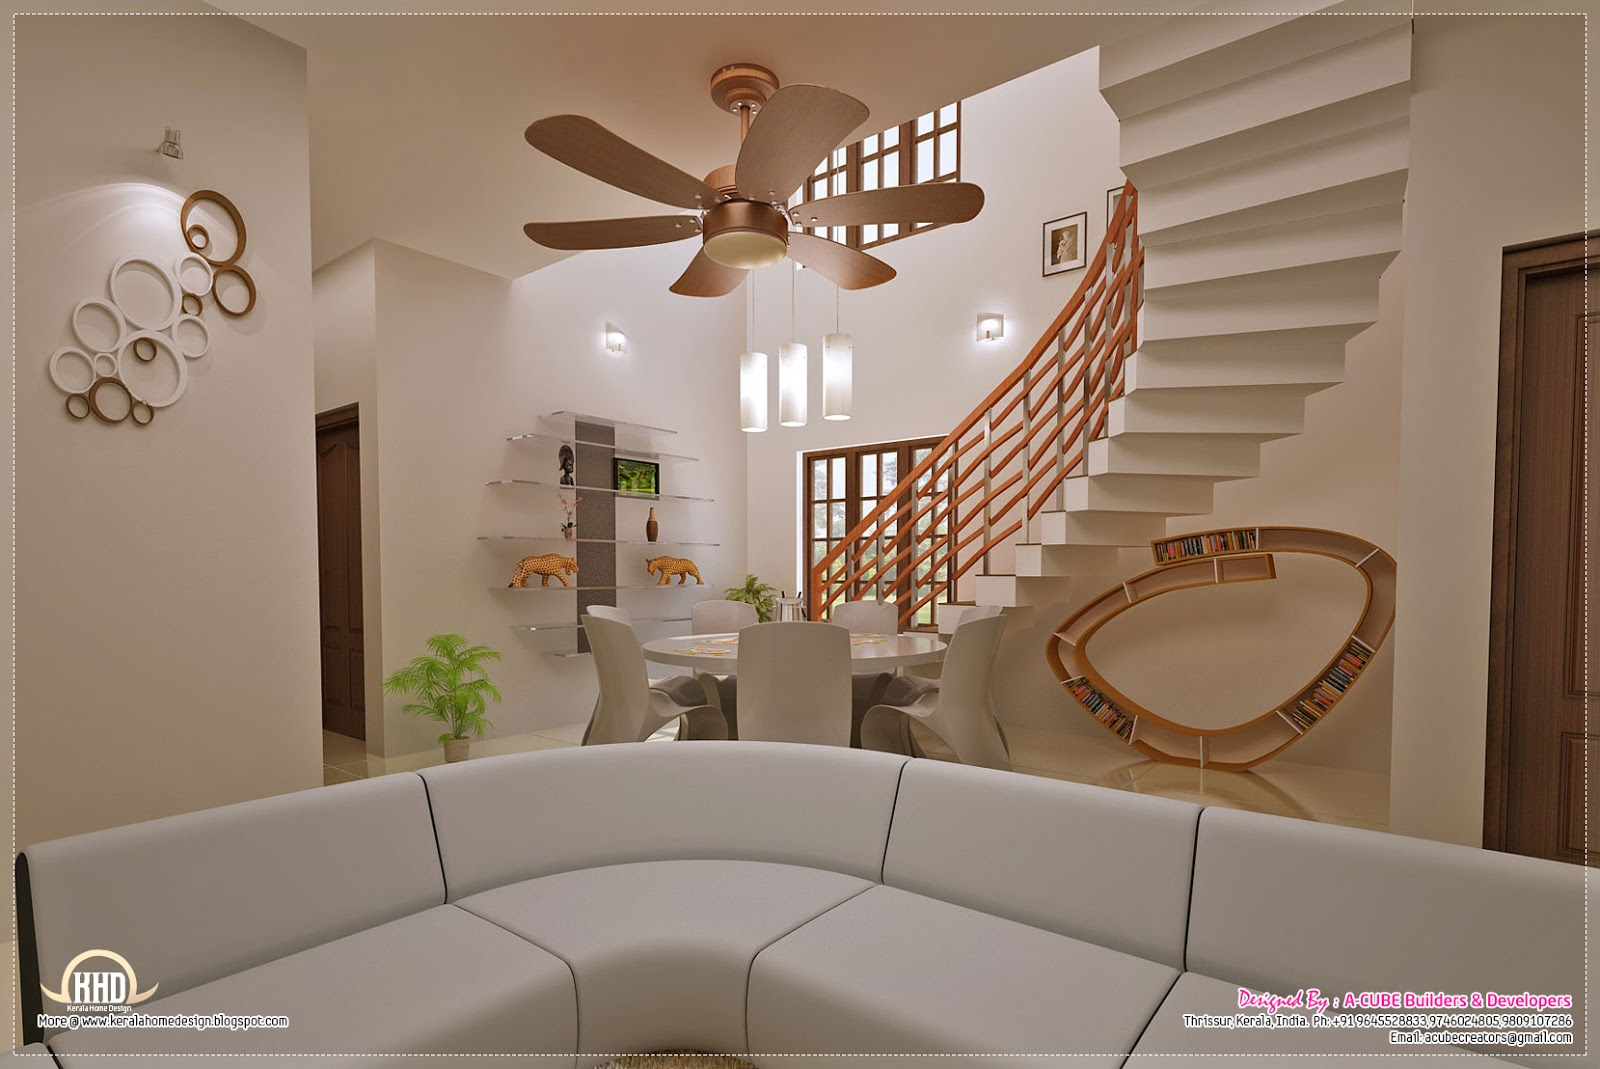 Awesome interior decoration ideas kerala home design and for House decoration inside